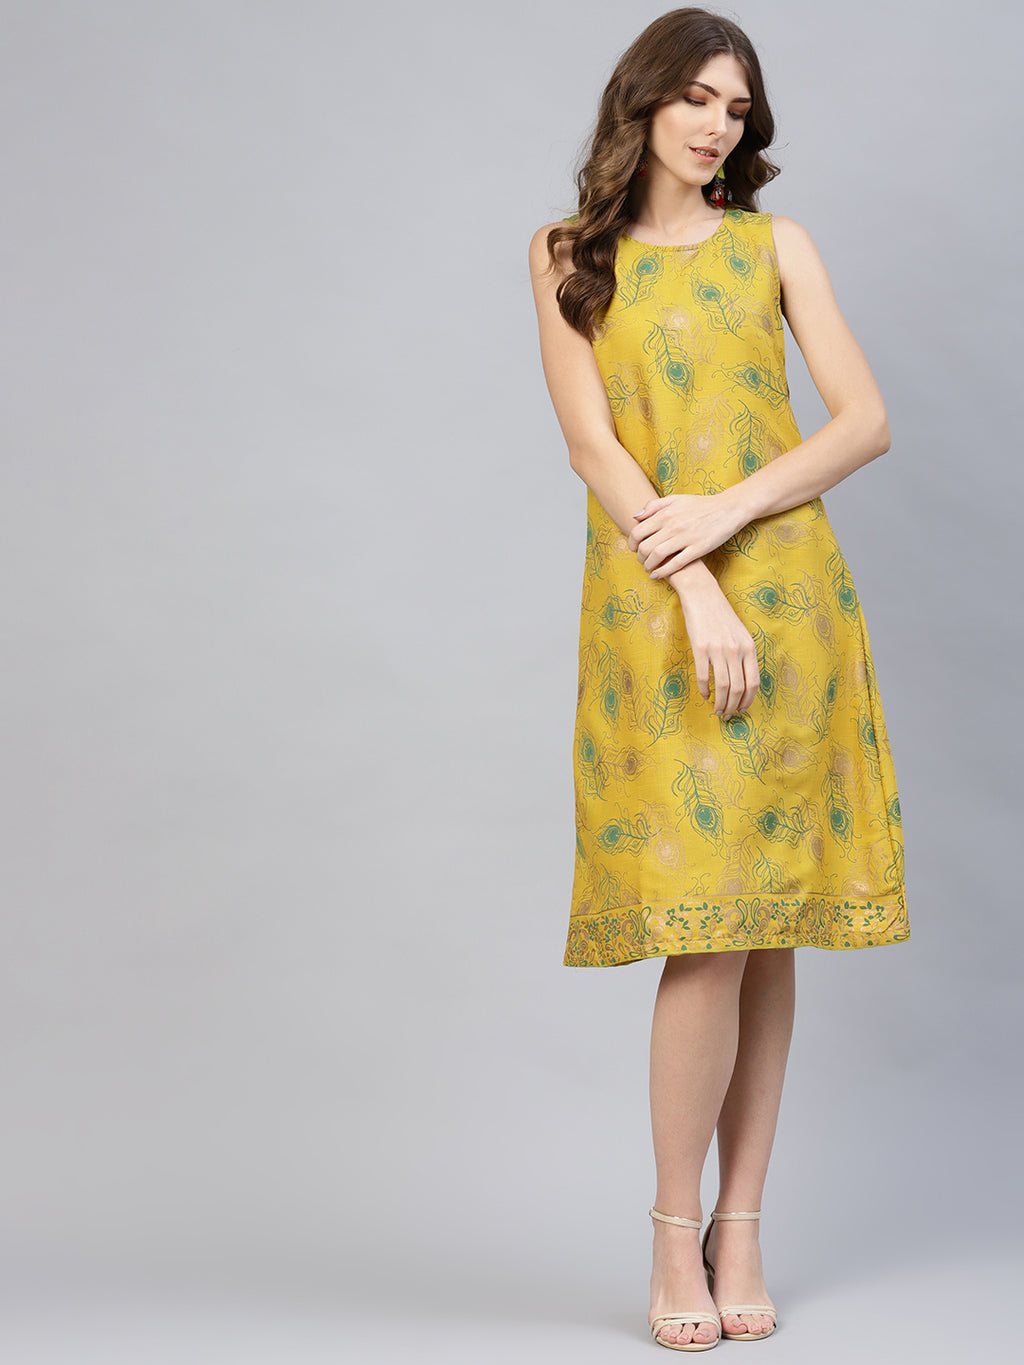 Yellow Gold Printed Shift Dress (Fully Stitched) | Znx4ever.com